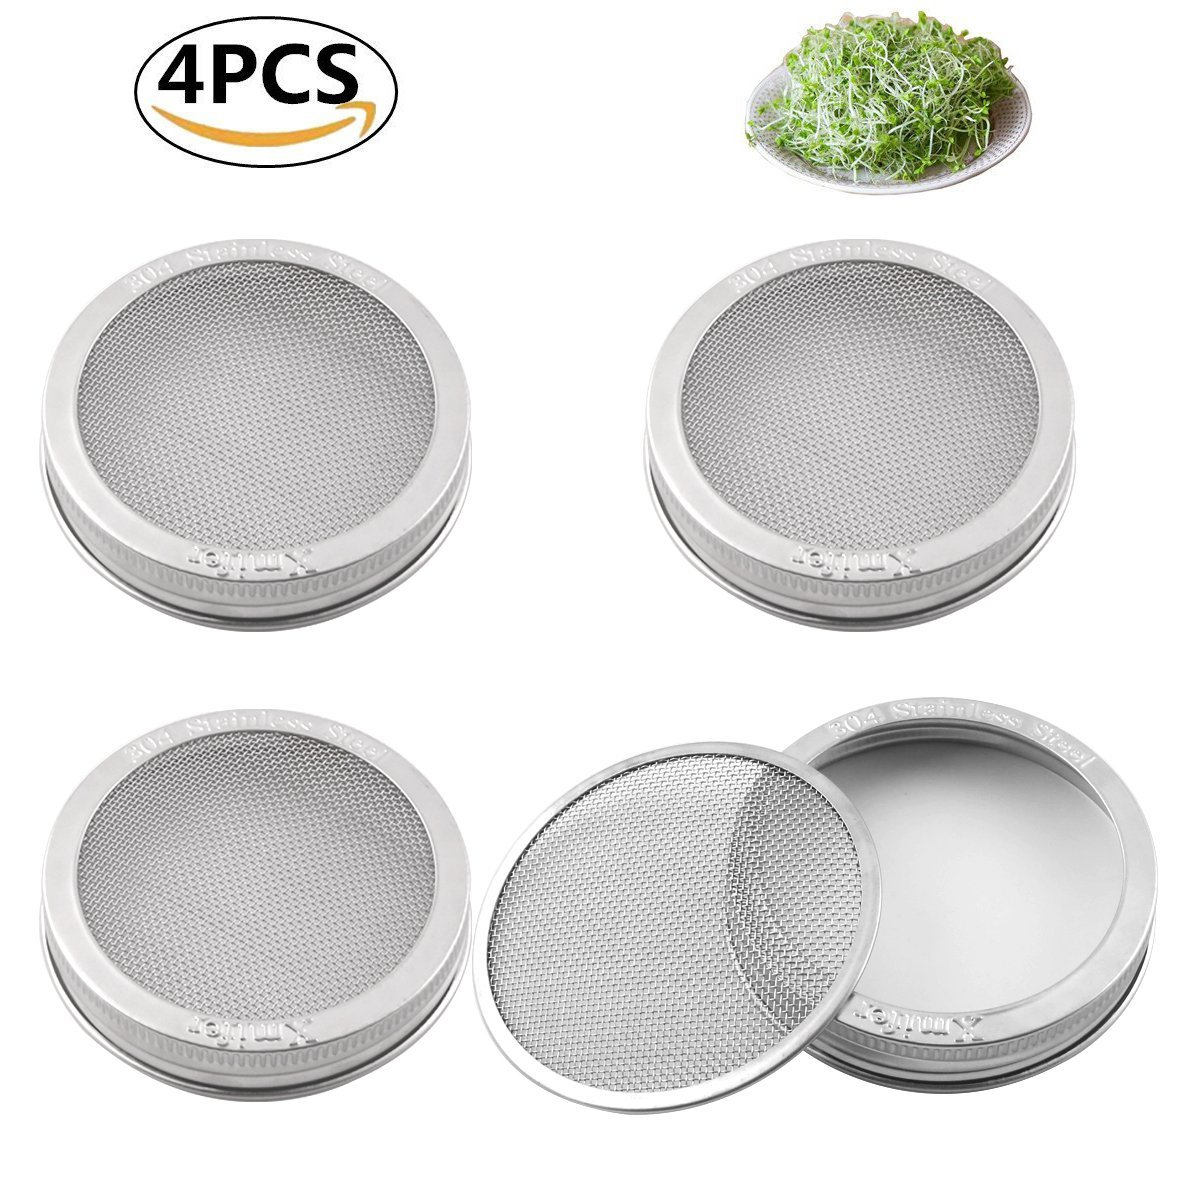 Sprouting Jar Strainer Lid - For Growing Organic Sprouts & Sprouter Screens - 304 Stainless Steel